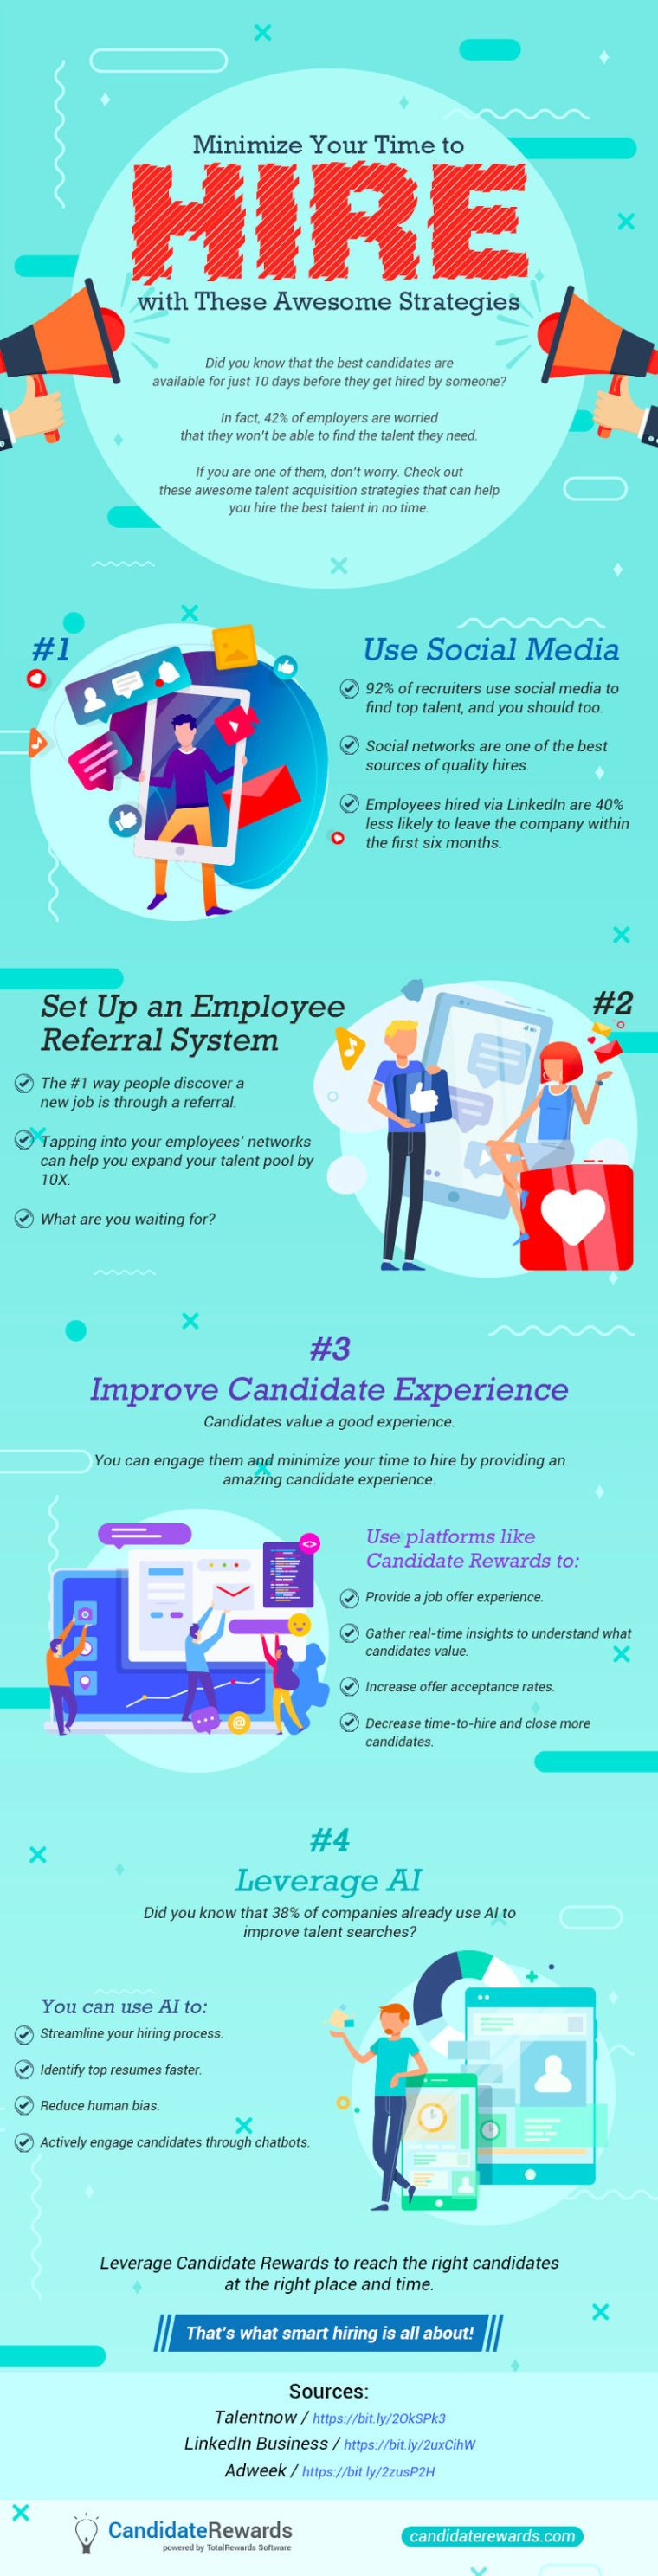 Hiring strategy infographic